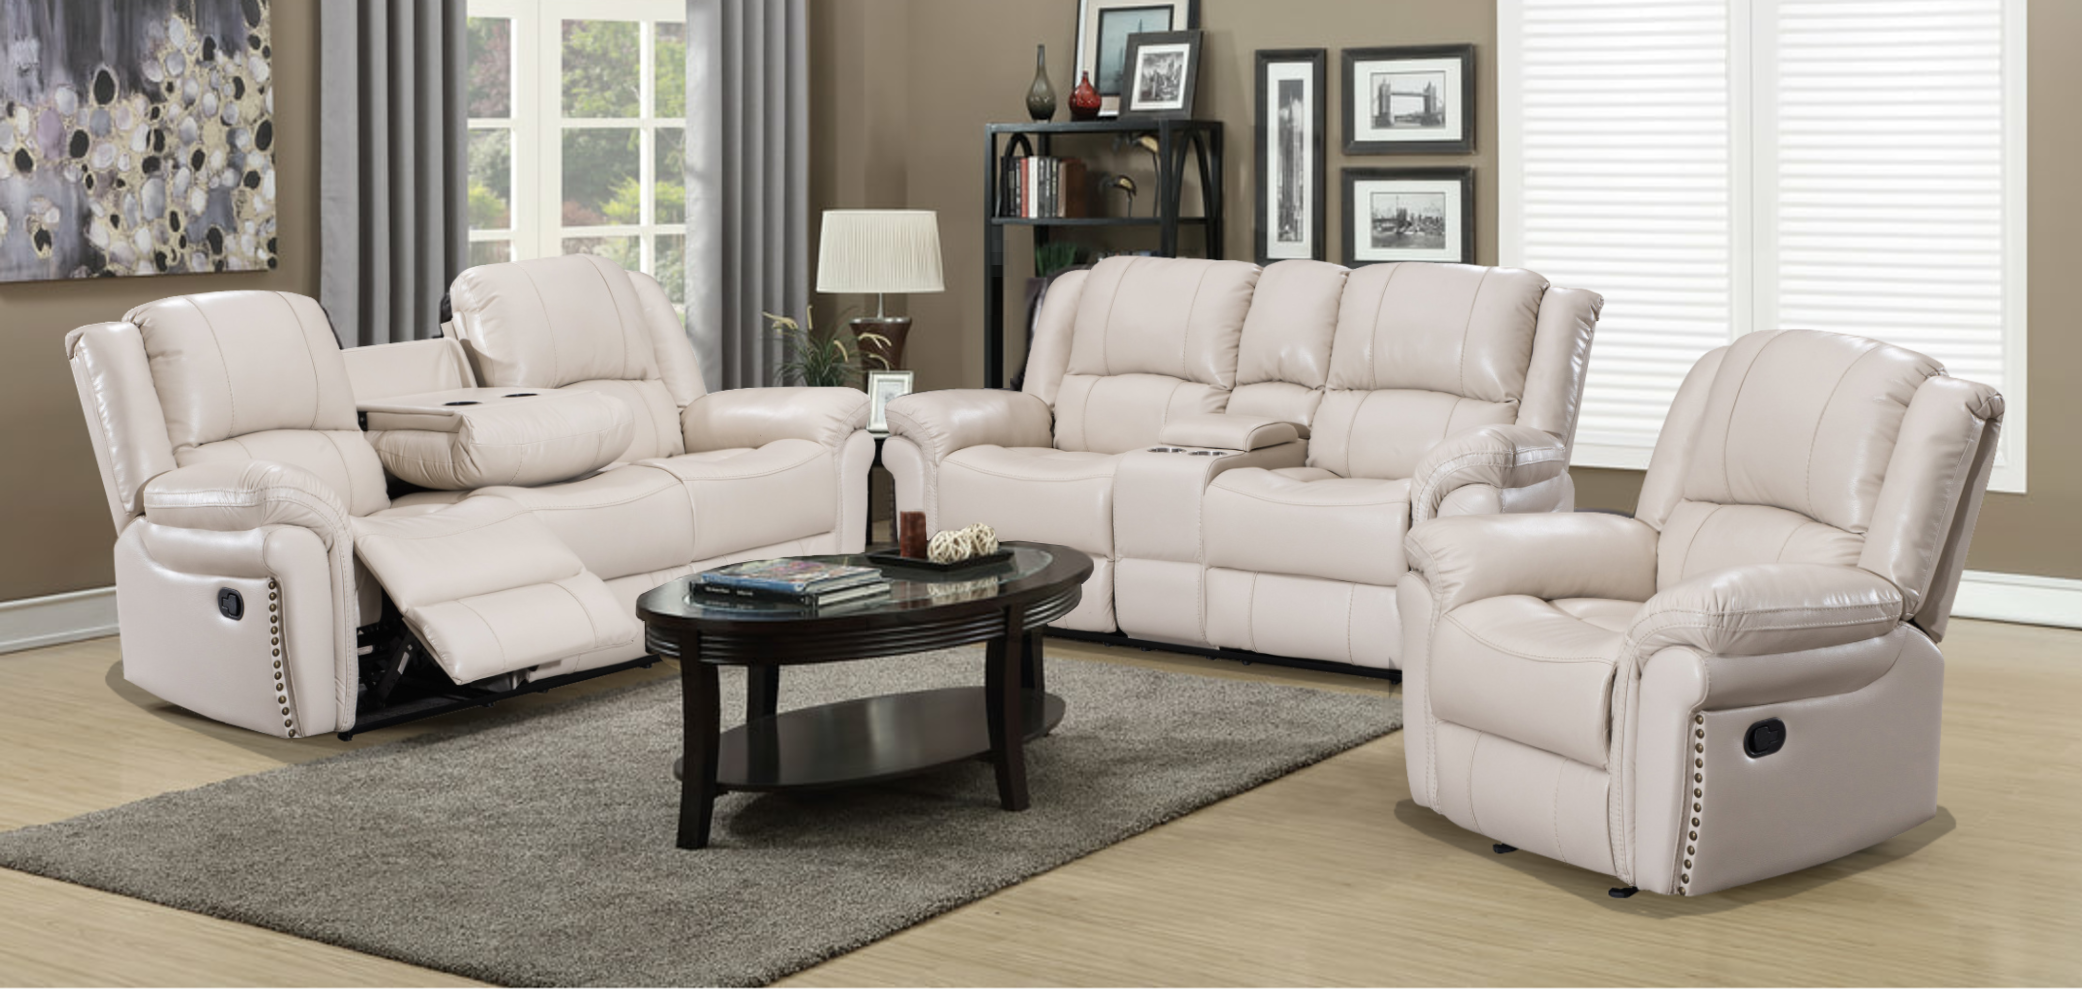 Monrose Off White 3 Pc Leather Reclining Sofa Set